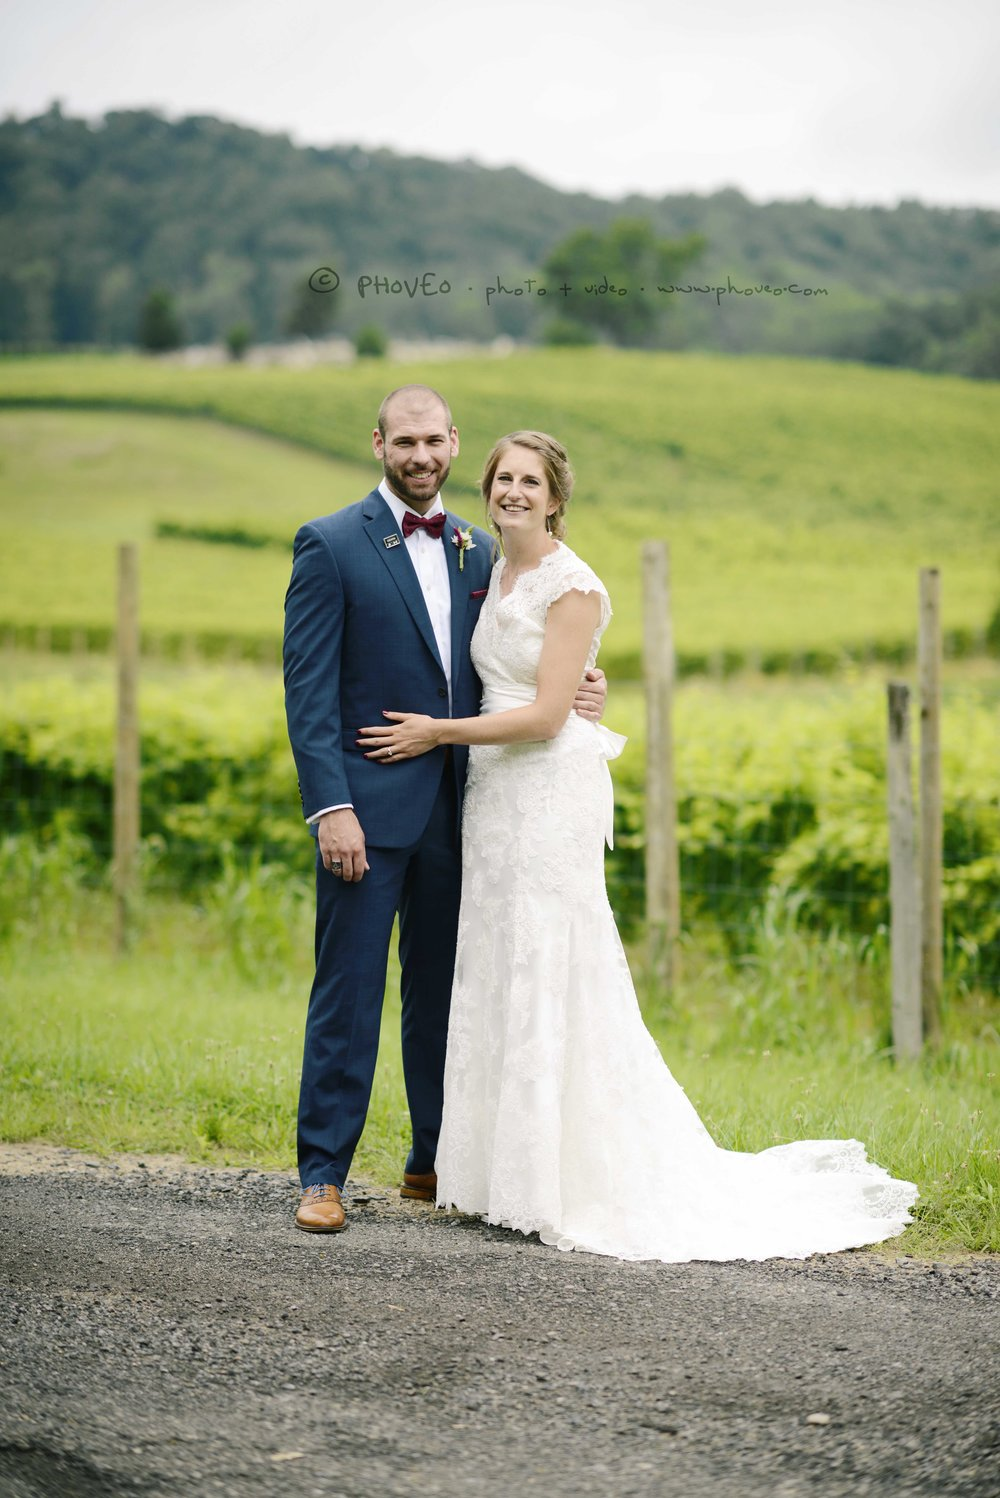 WM_20170812_Lauren+Sean_17.jpg